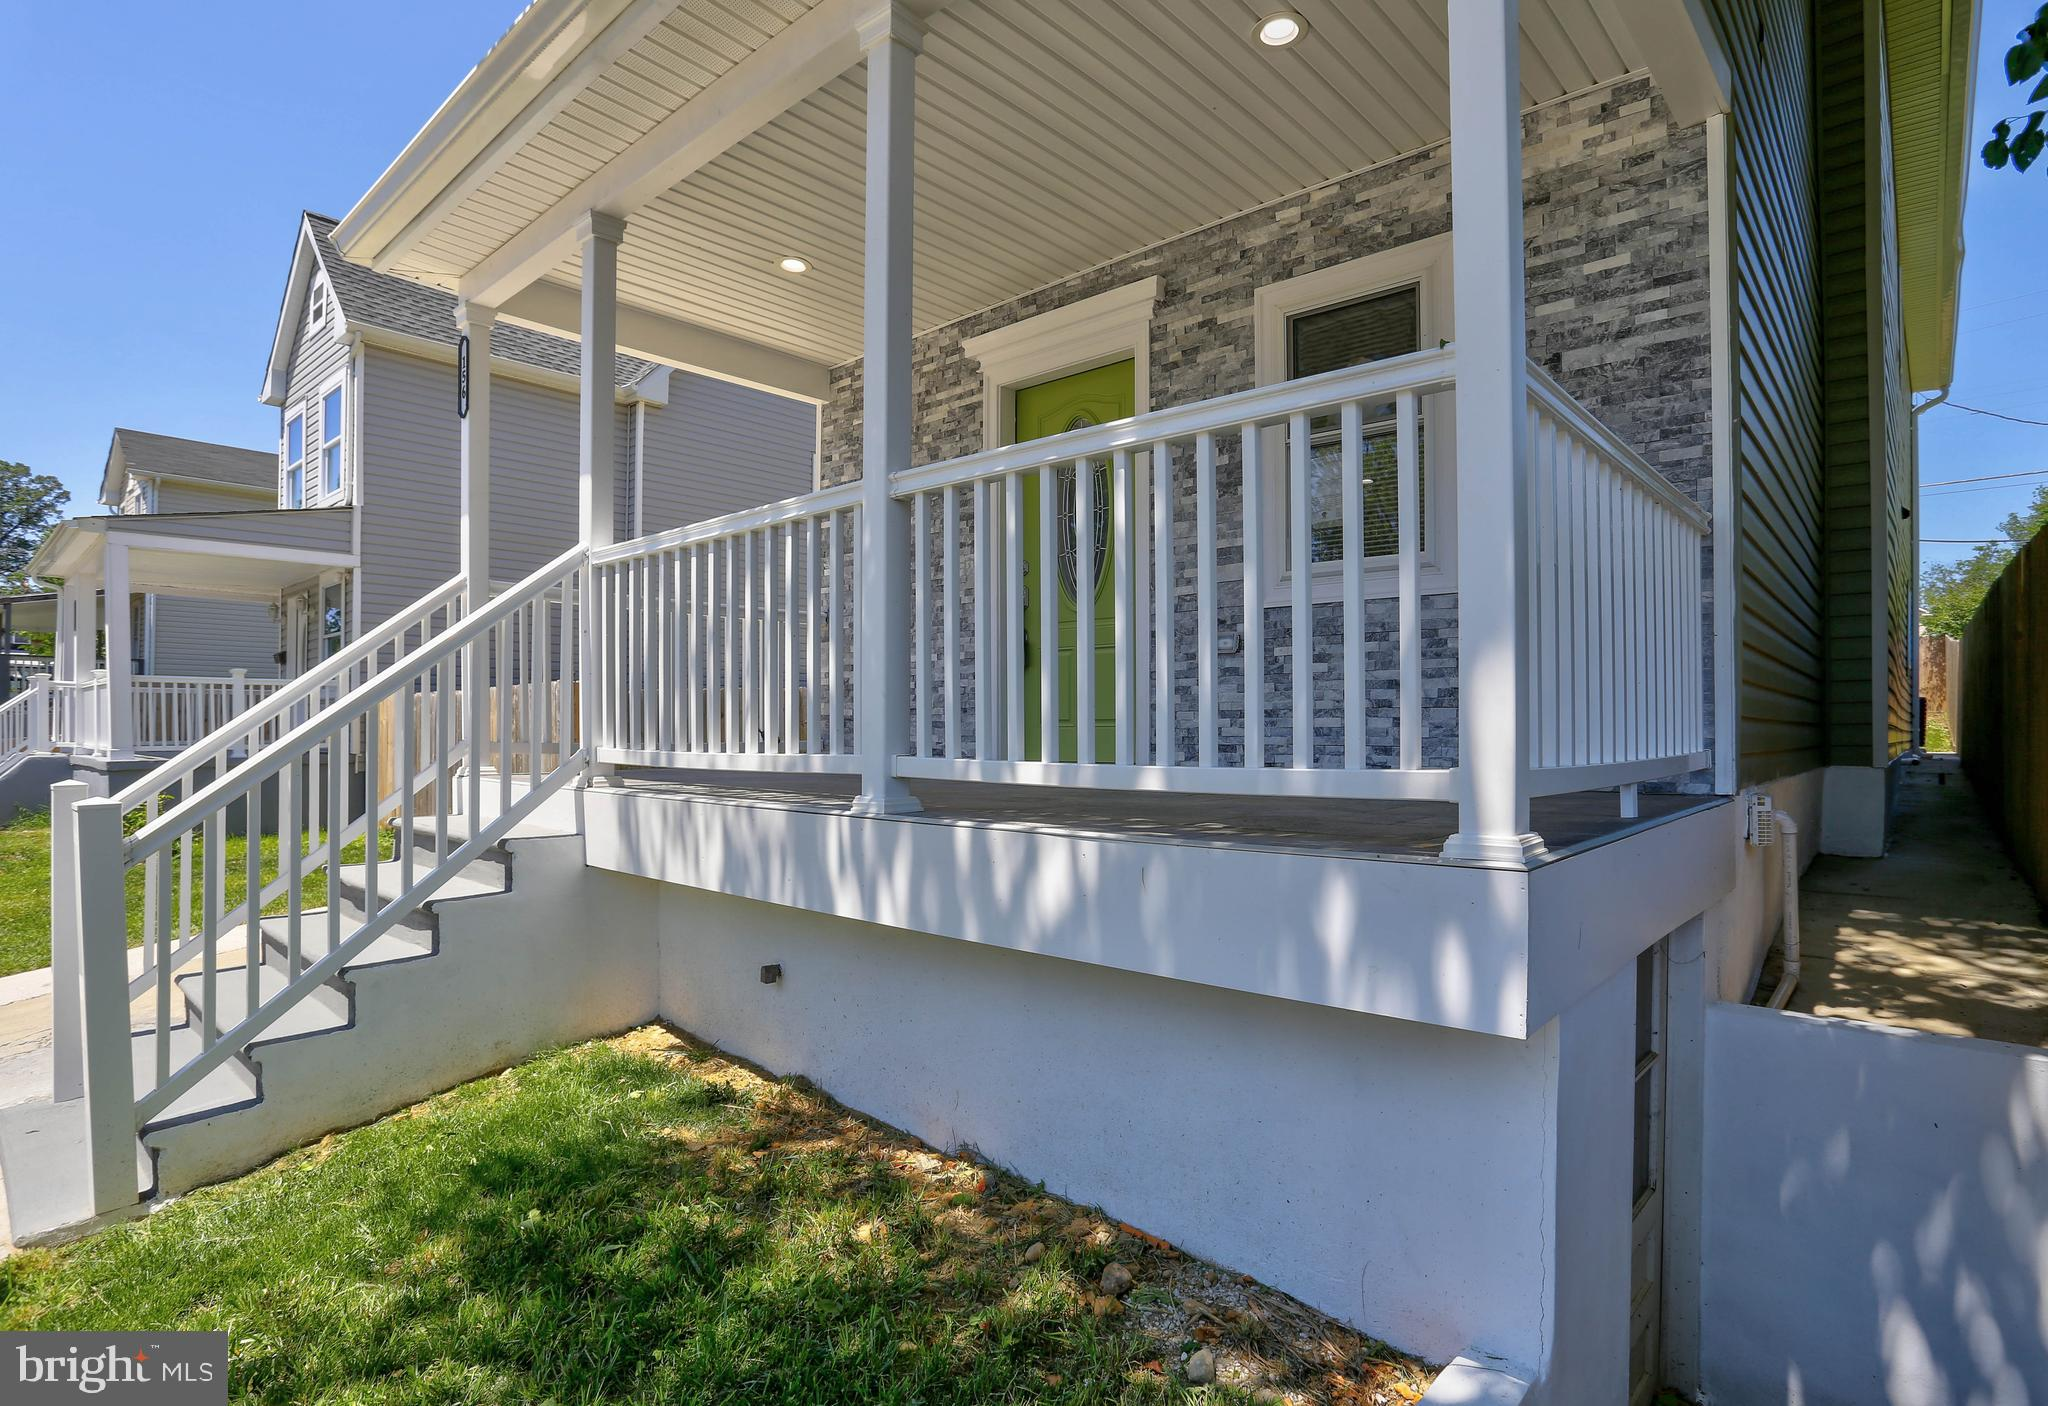 This property will not disappoint ! The sellers have rehabbed this home with such care and detail no